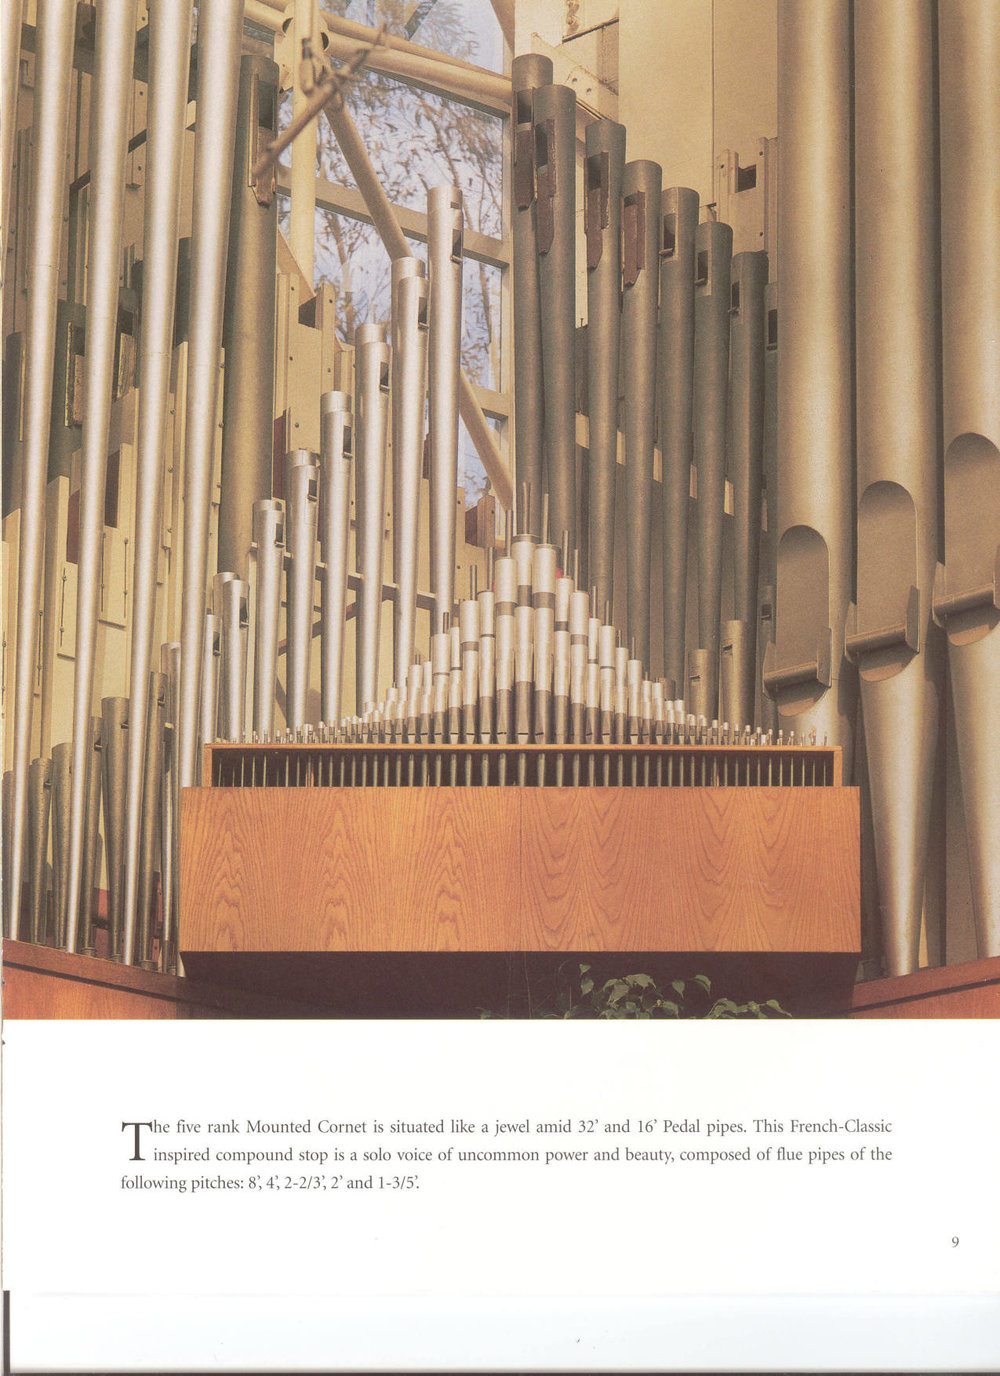 The Organs of the Crystal Cathedral_Page_09.jpg